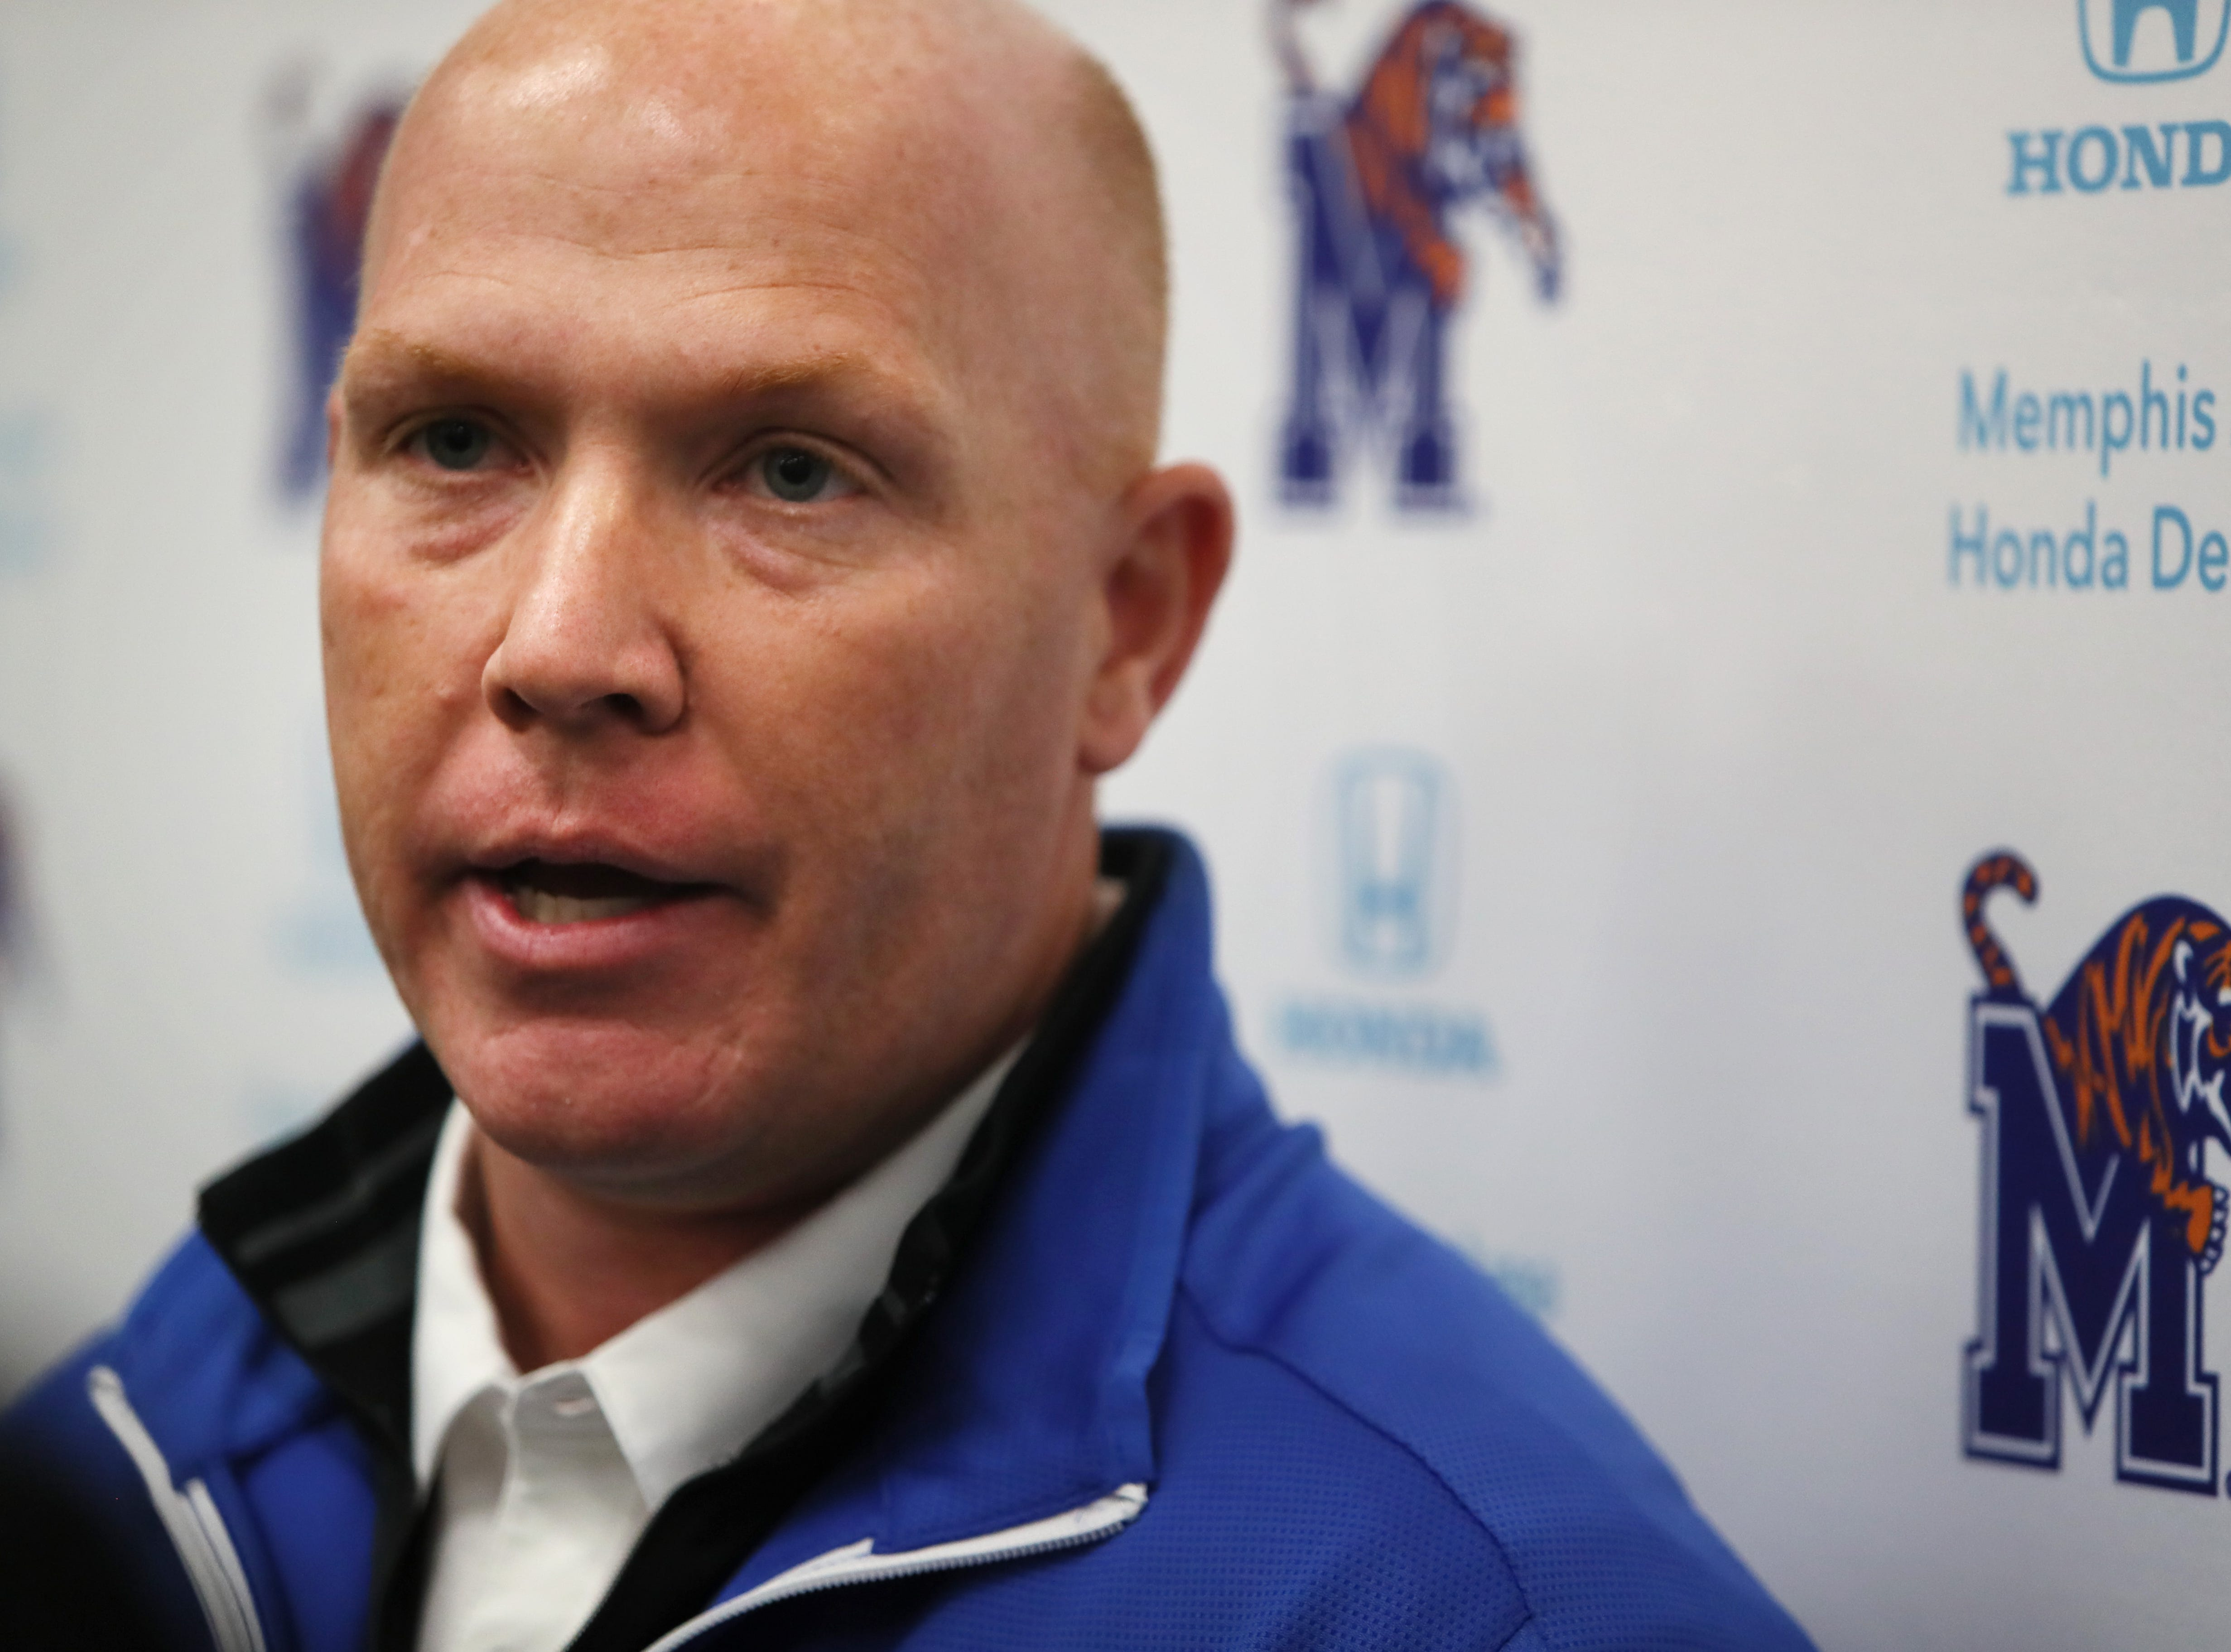 Memphis Tigers Defensive Coordinator Adam Fuller talks to reporters during a press conference to introduce new coaching staff members on the university's campus Saturday, Jan. 12, 2019.